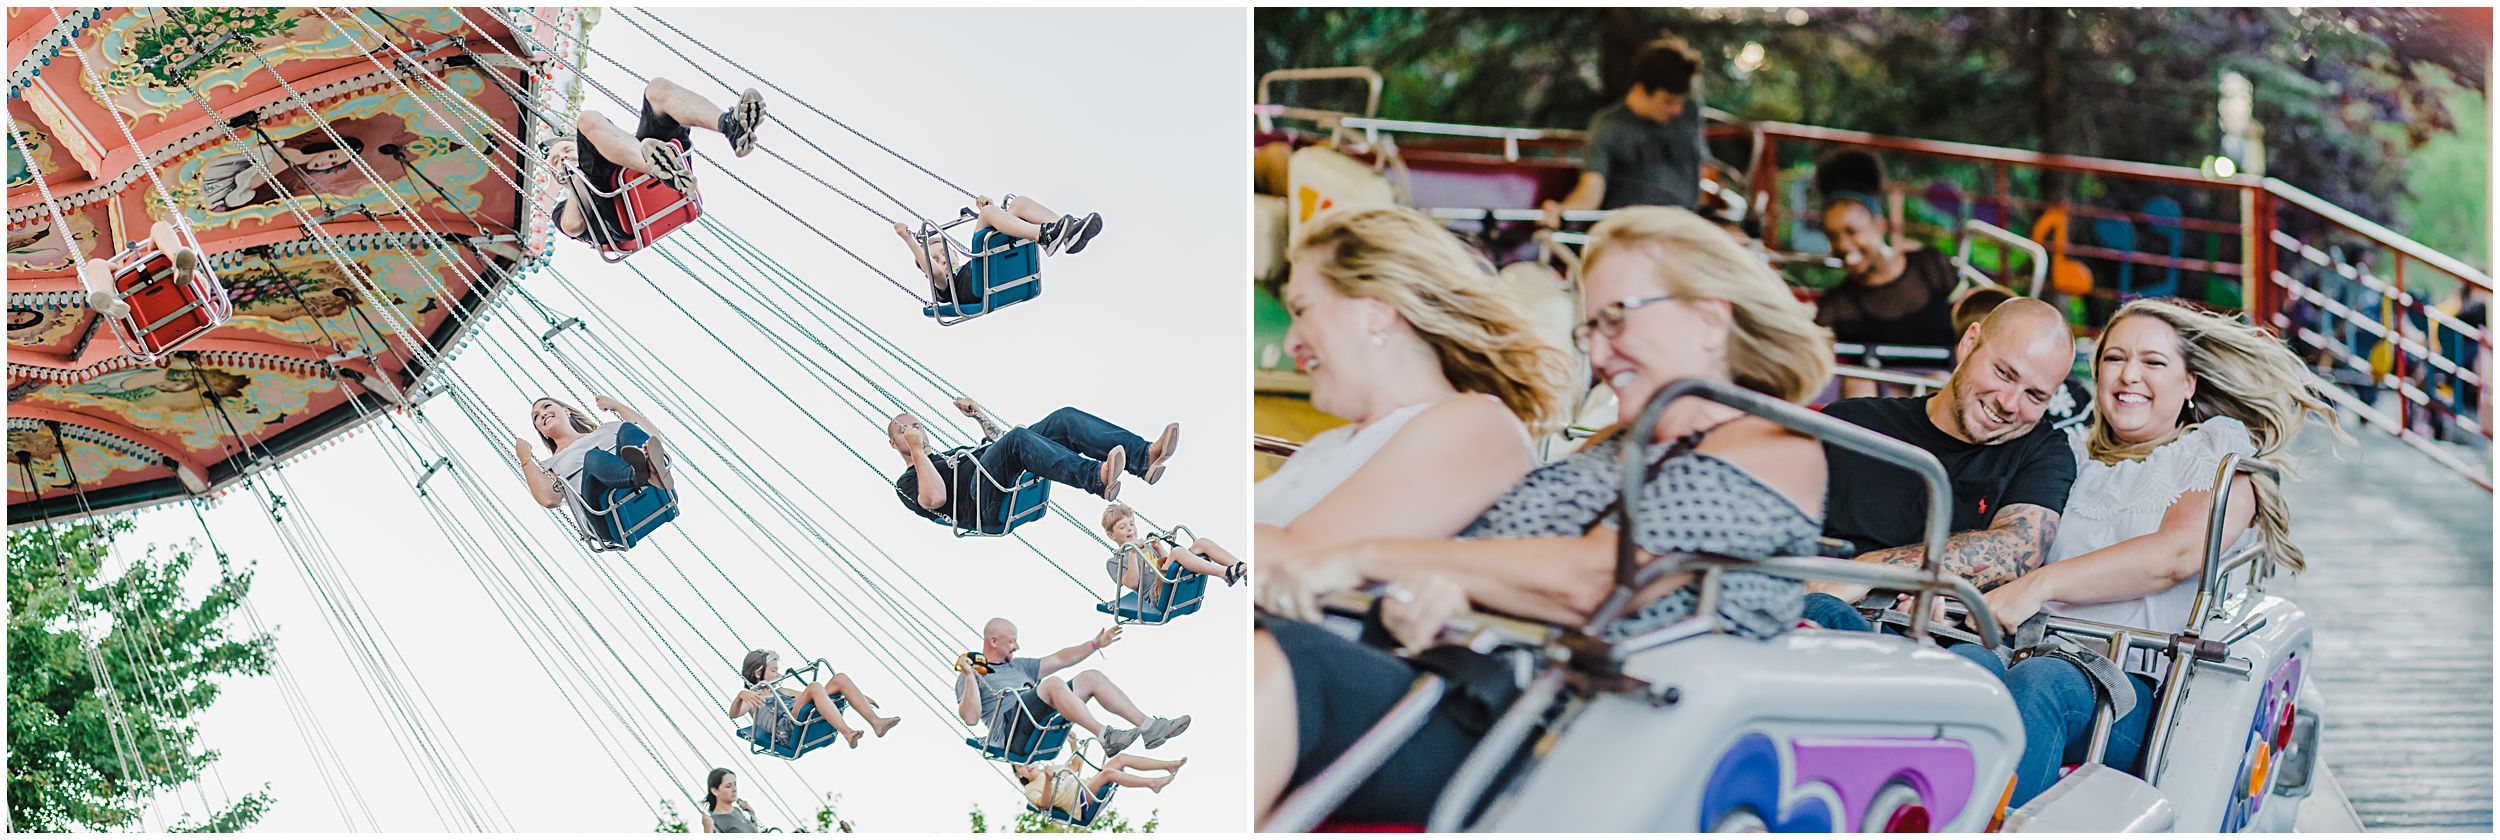 kennywood_engagement_session_0003.jpg